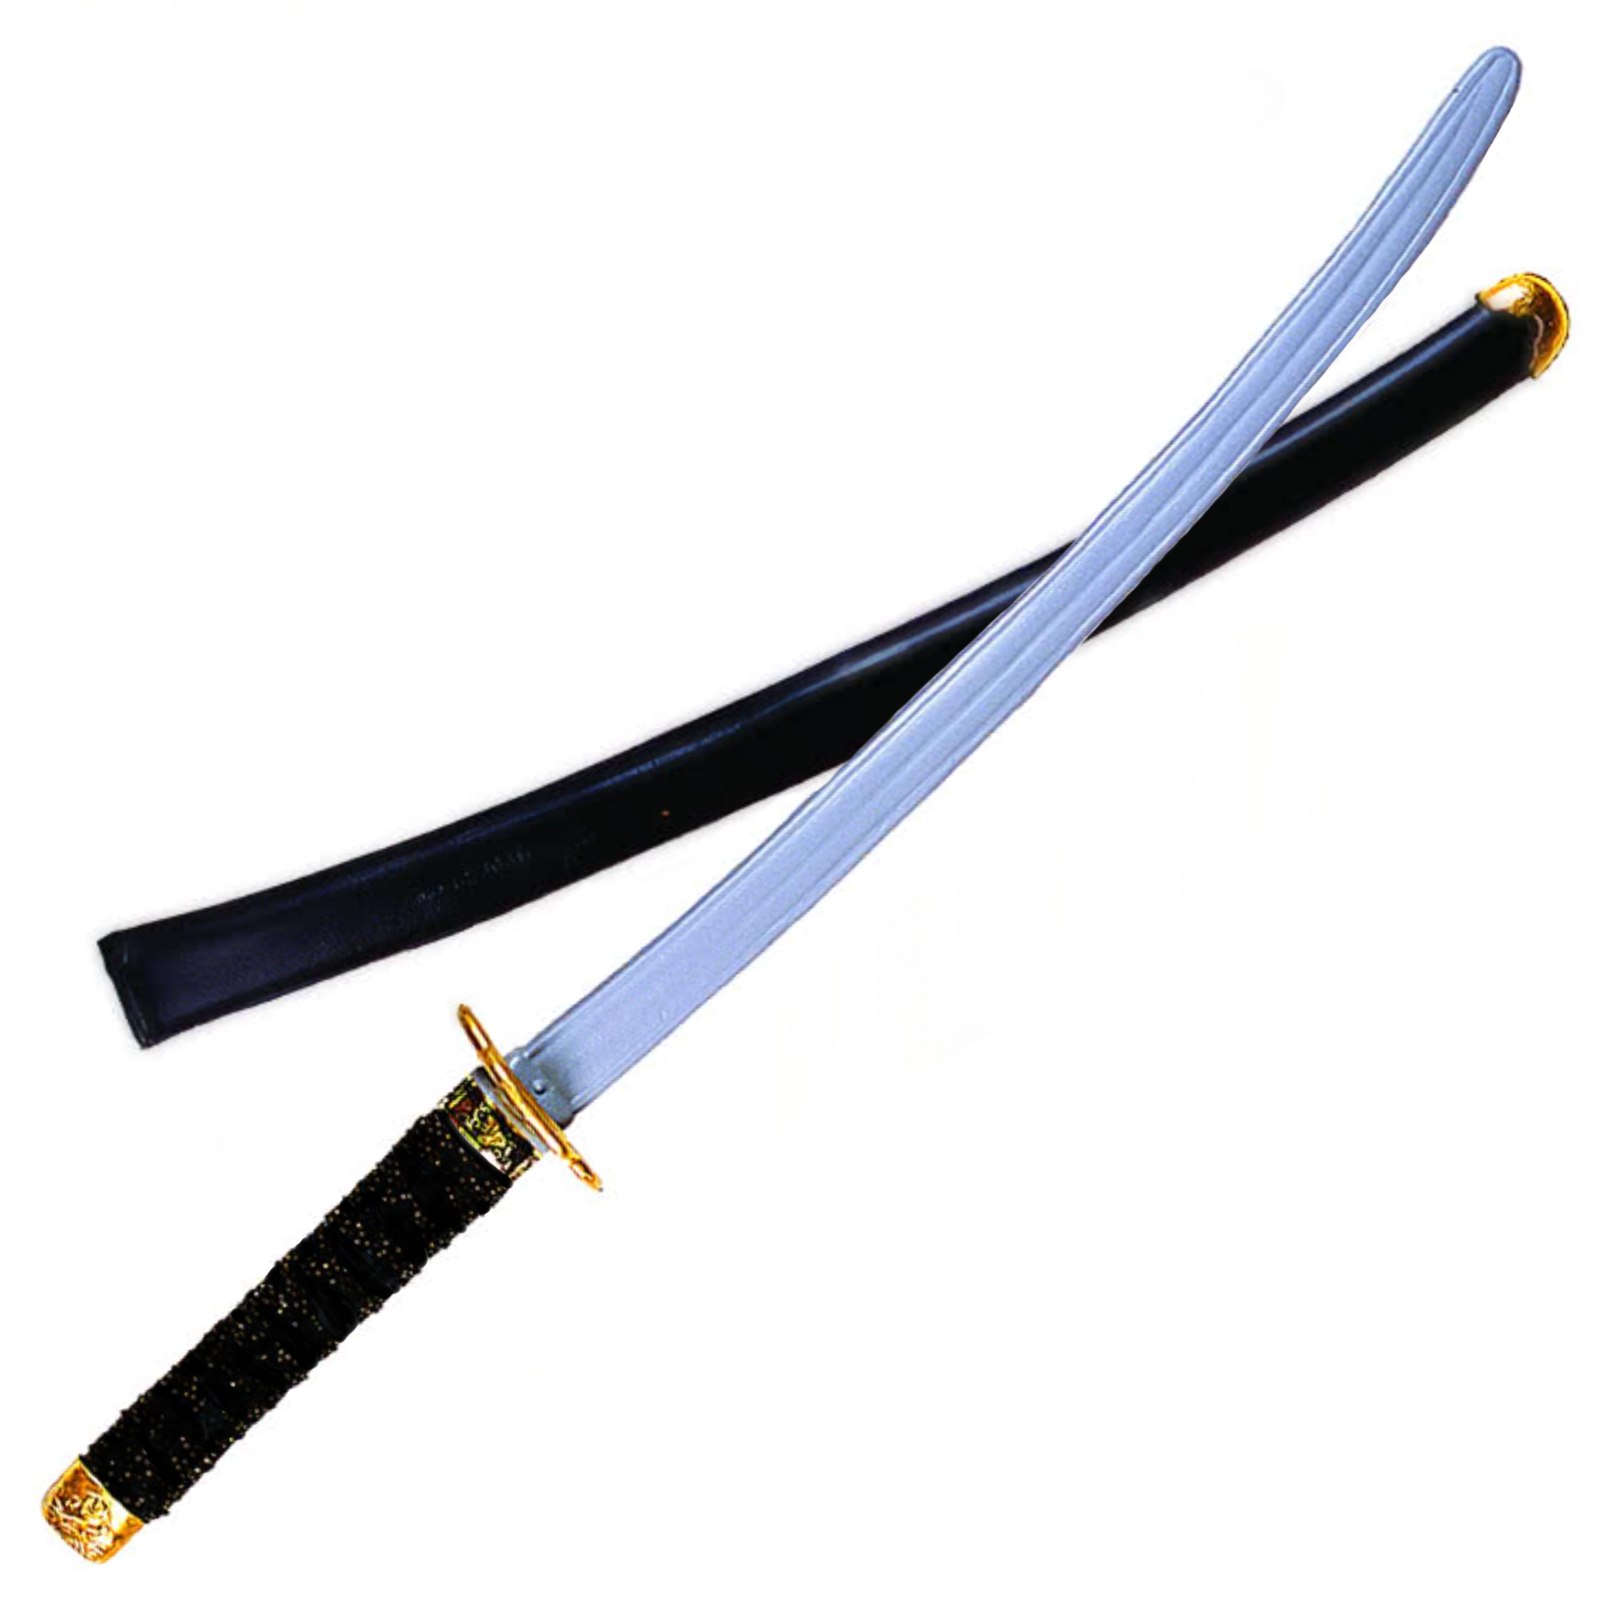 Ninja Sword Black Handle - Costume Sword